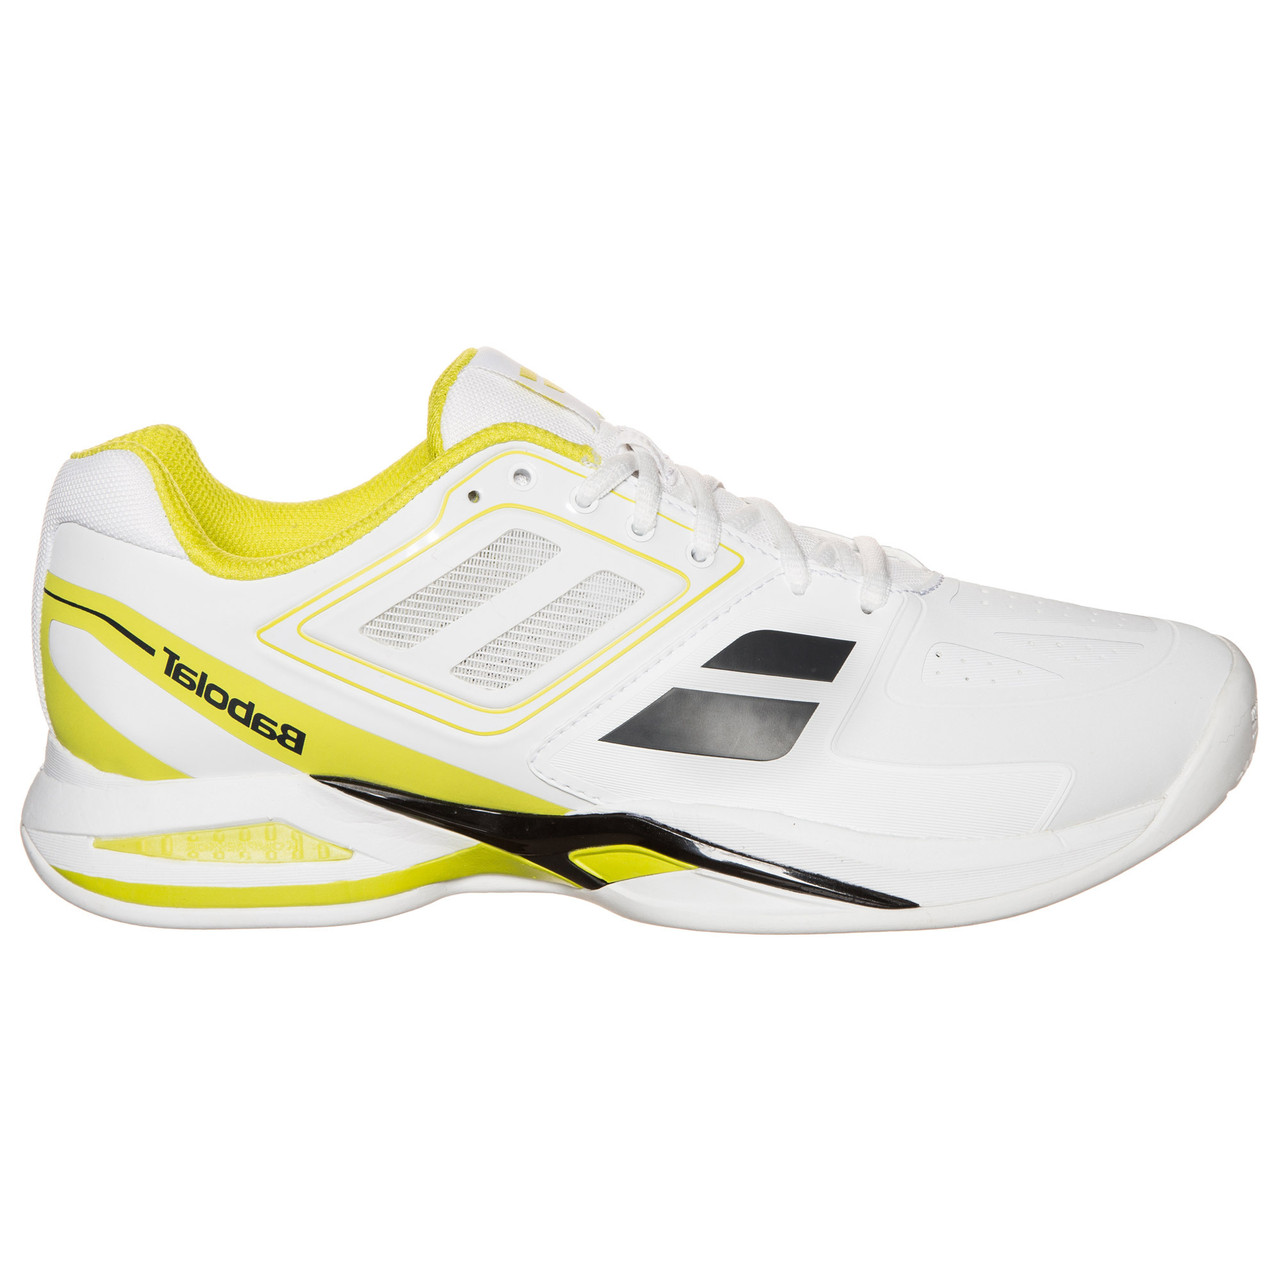 33c6d4a7 Кроссовки теннисные BABOLAT PROPULSE TEAM BPM CLAY (30S1502/113 ...